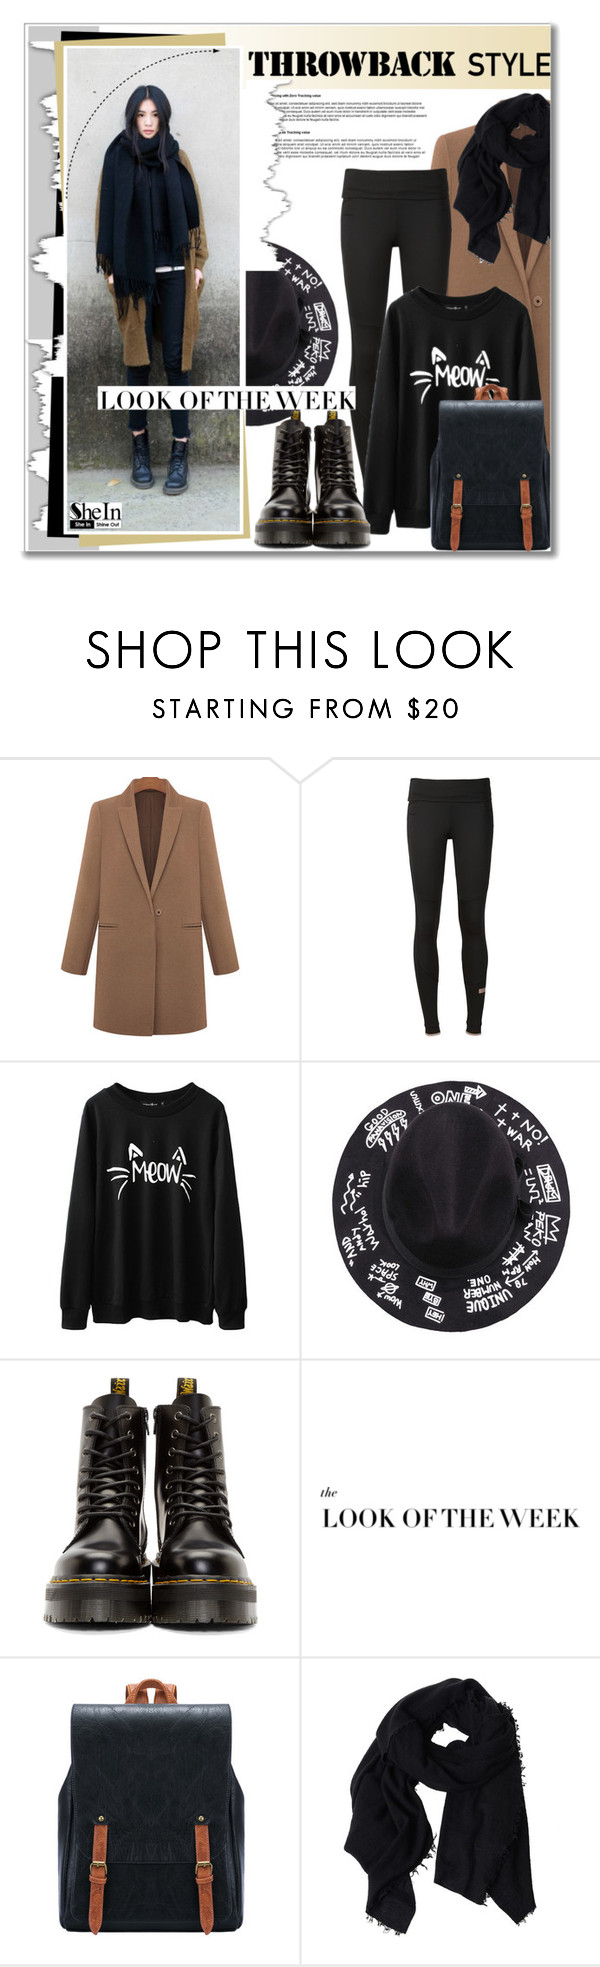 """Untitled #2209"" by deeyanago ❤ liked on Polyvore featuring adidas, Dr. Martens, Faliero Sarti, GetTheLook, Sheinside and throwbackstyle"